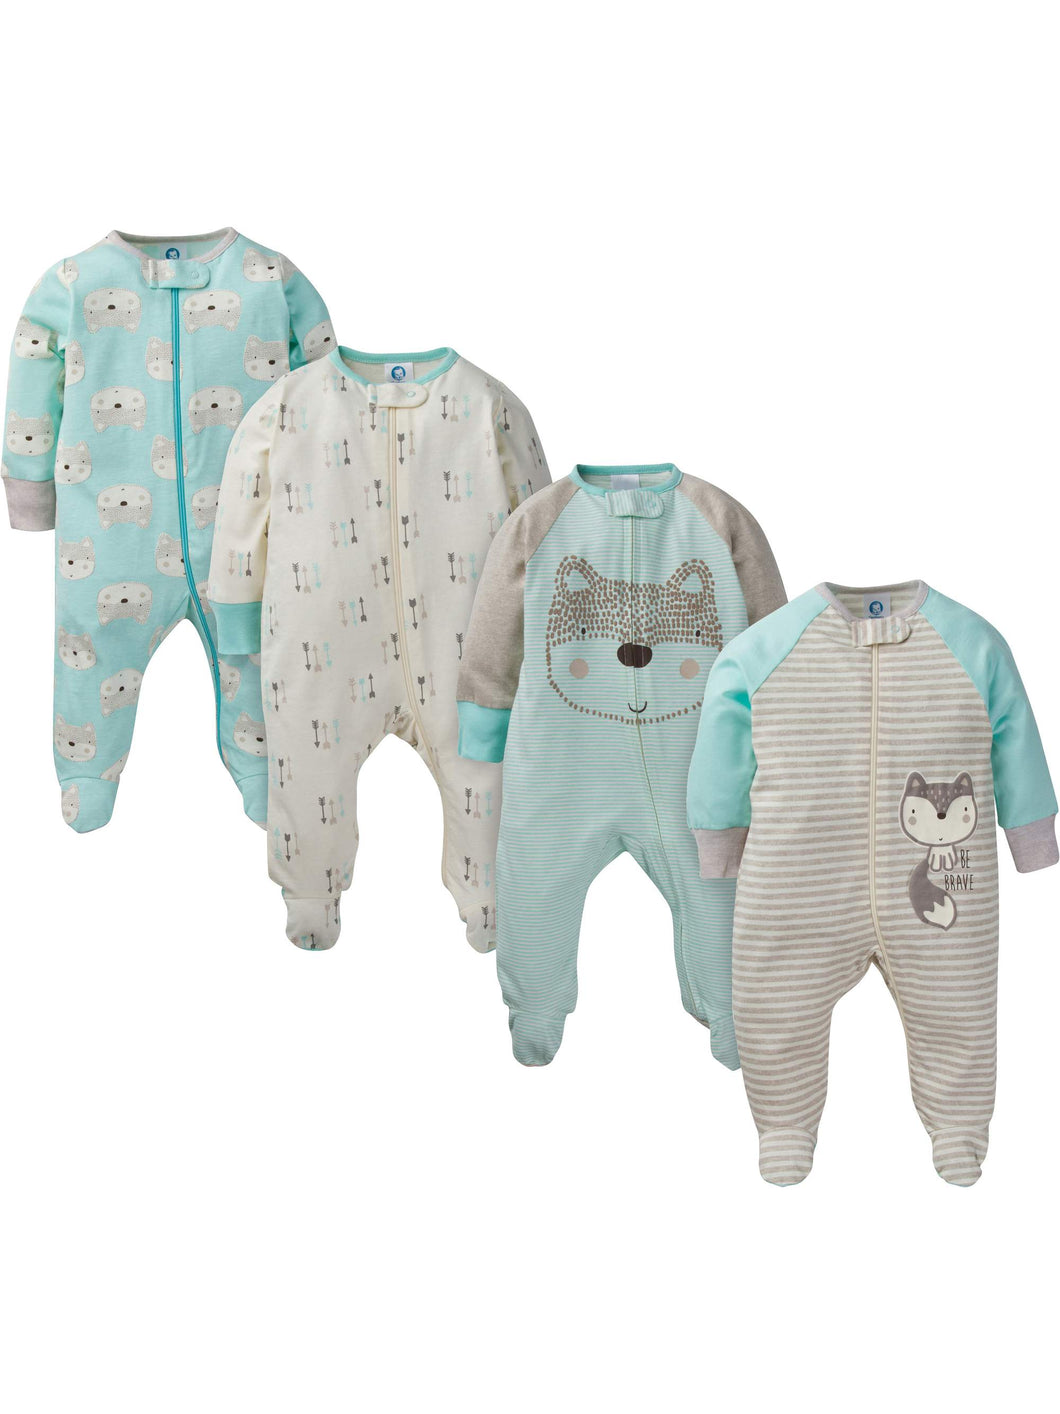 Kit Baby Boy Zip Up Sleep 'N Play 4-Pç  - Encomenda